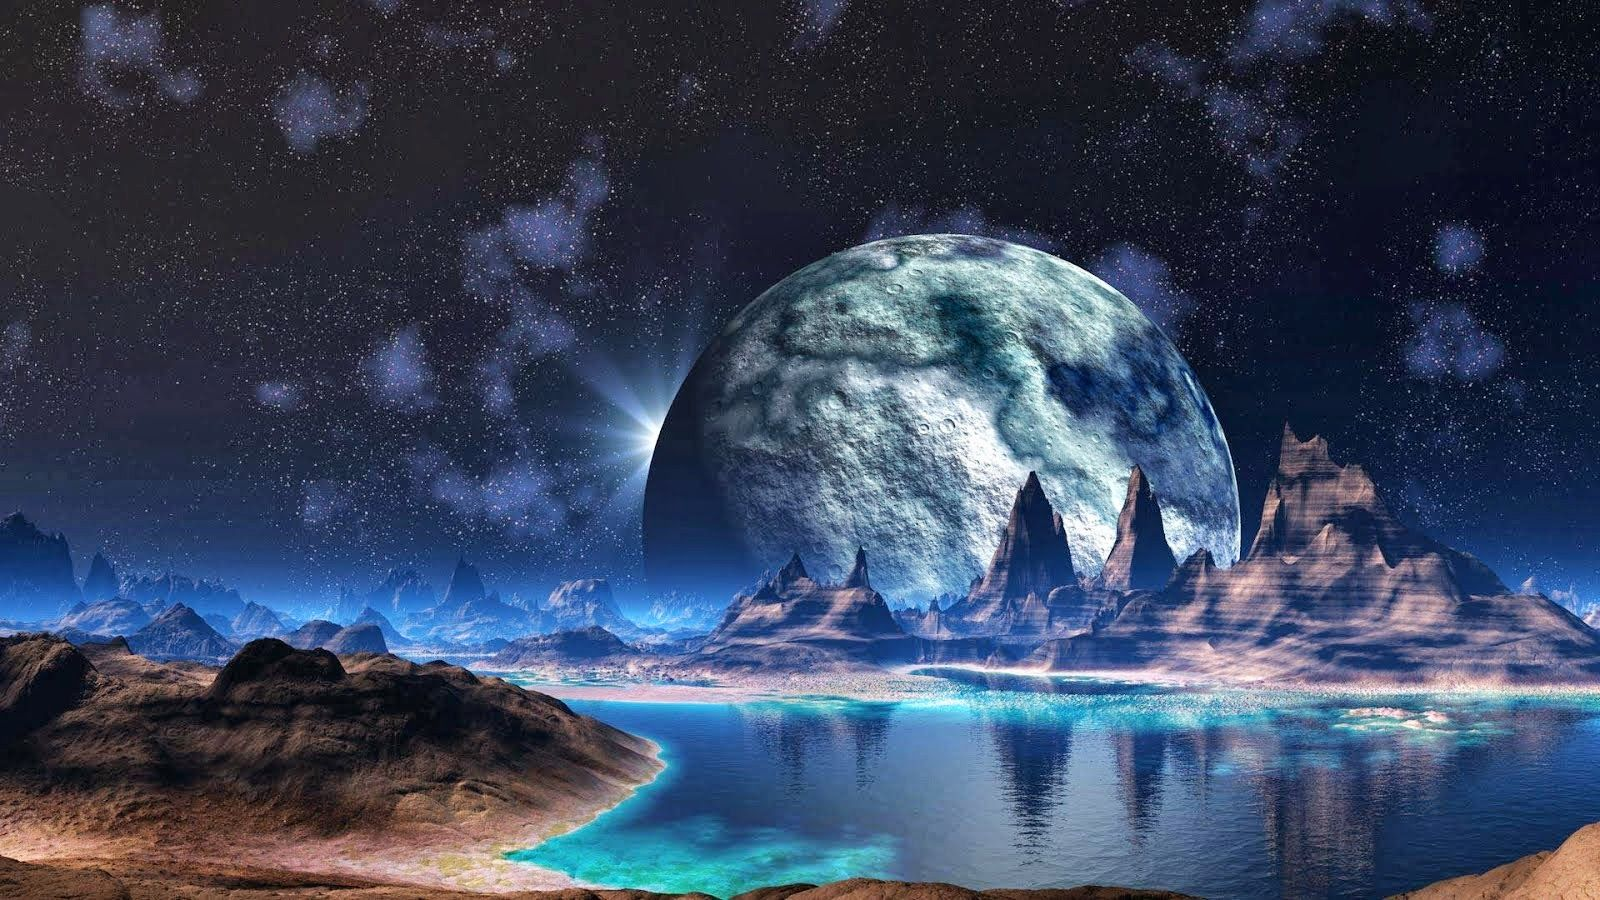 Wallpapers Hd 1080p Space Sci Fi Wallpaper Cool Backgrounds Cool Desktop Backgrounds